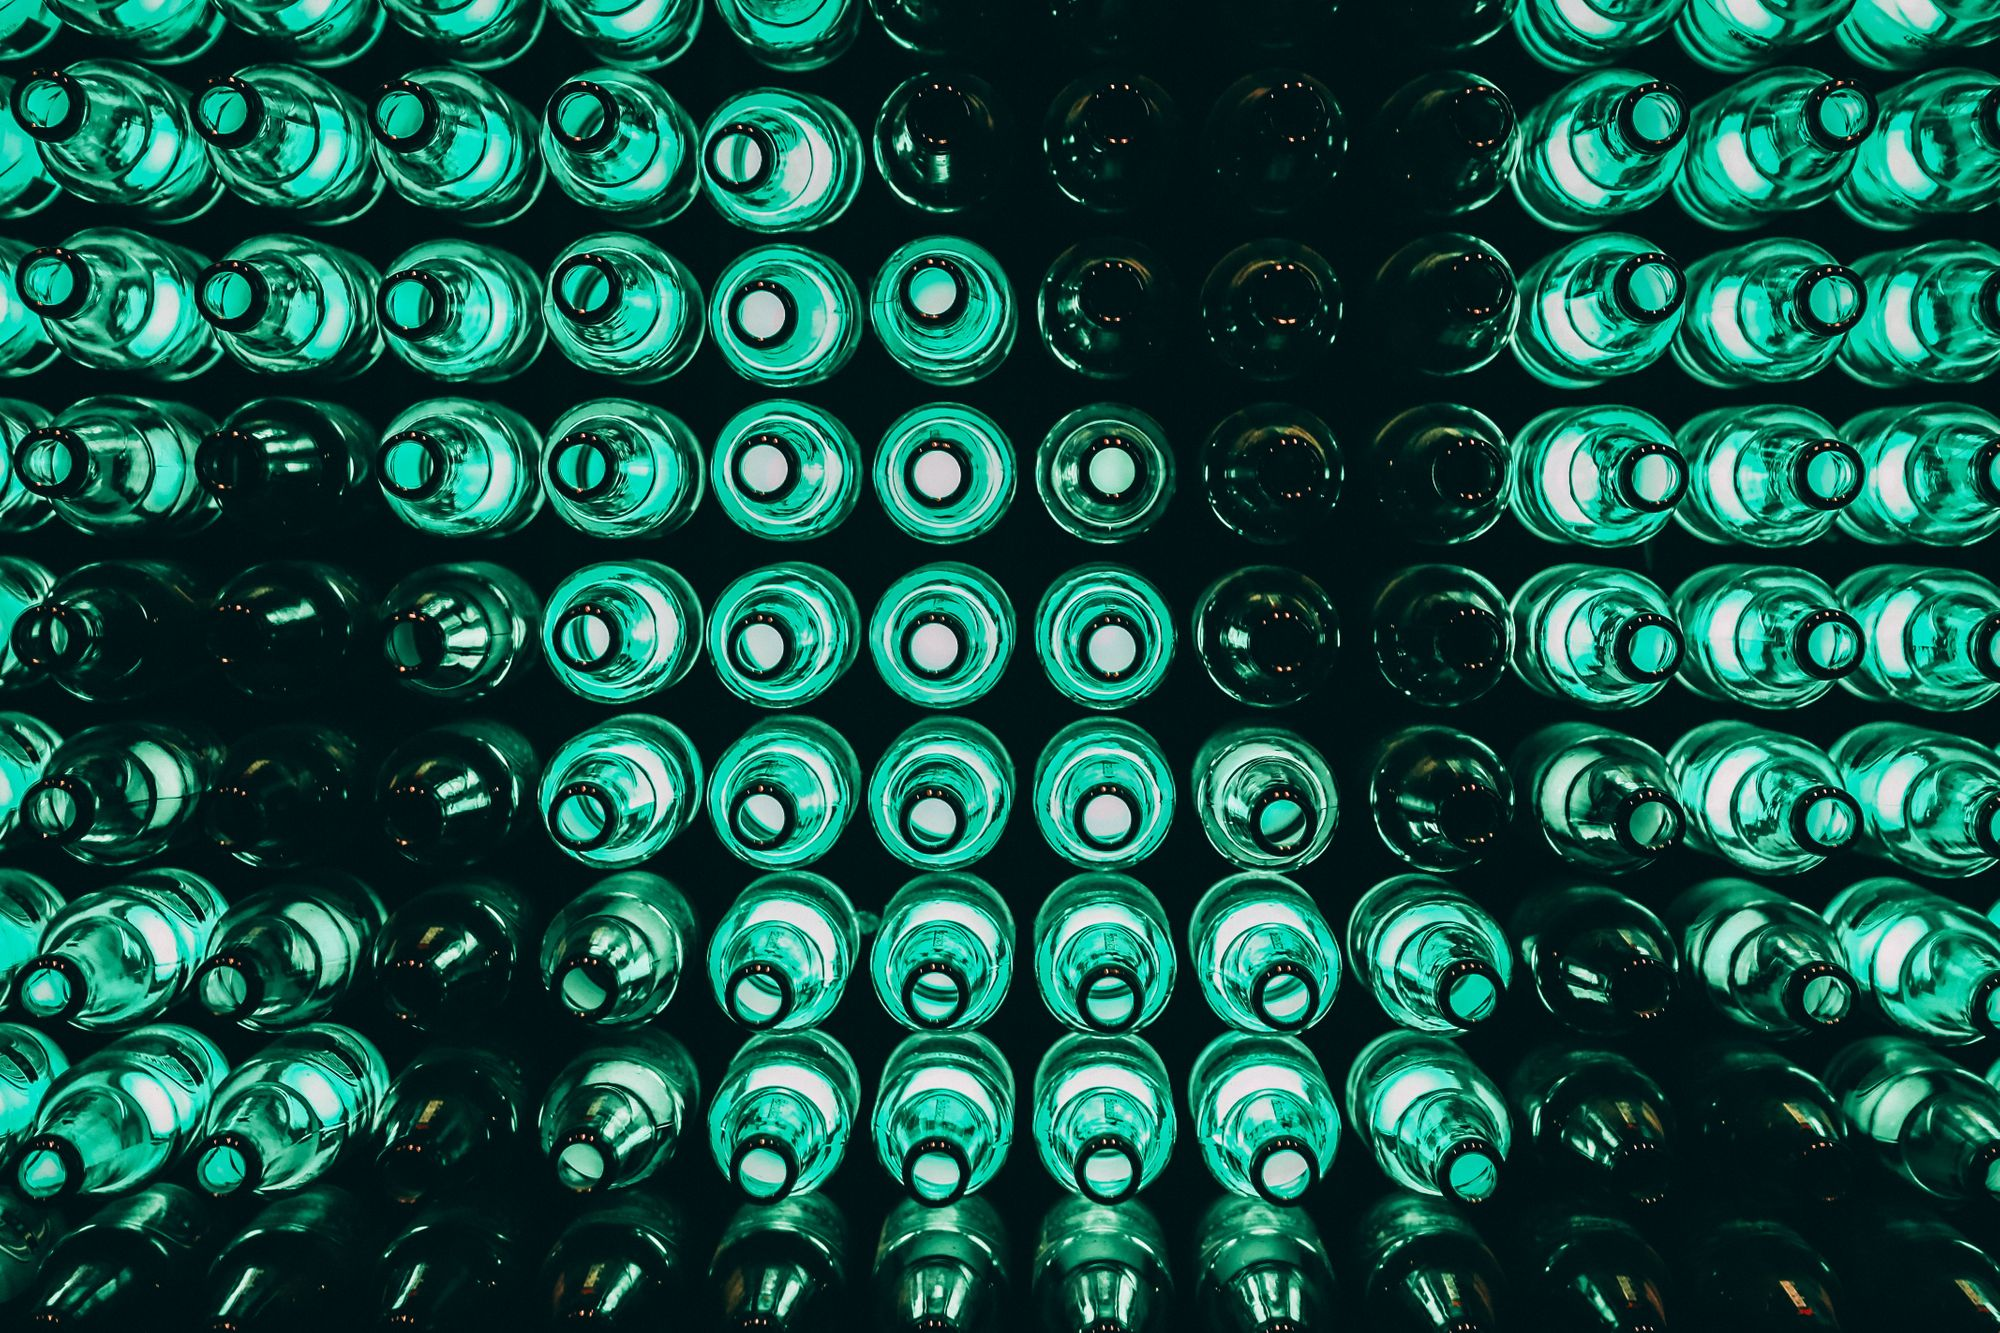 Bottles stacked and aligned